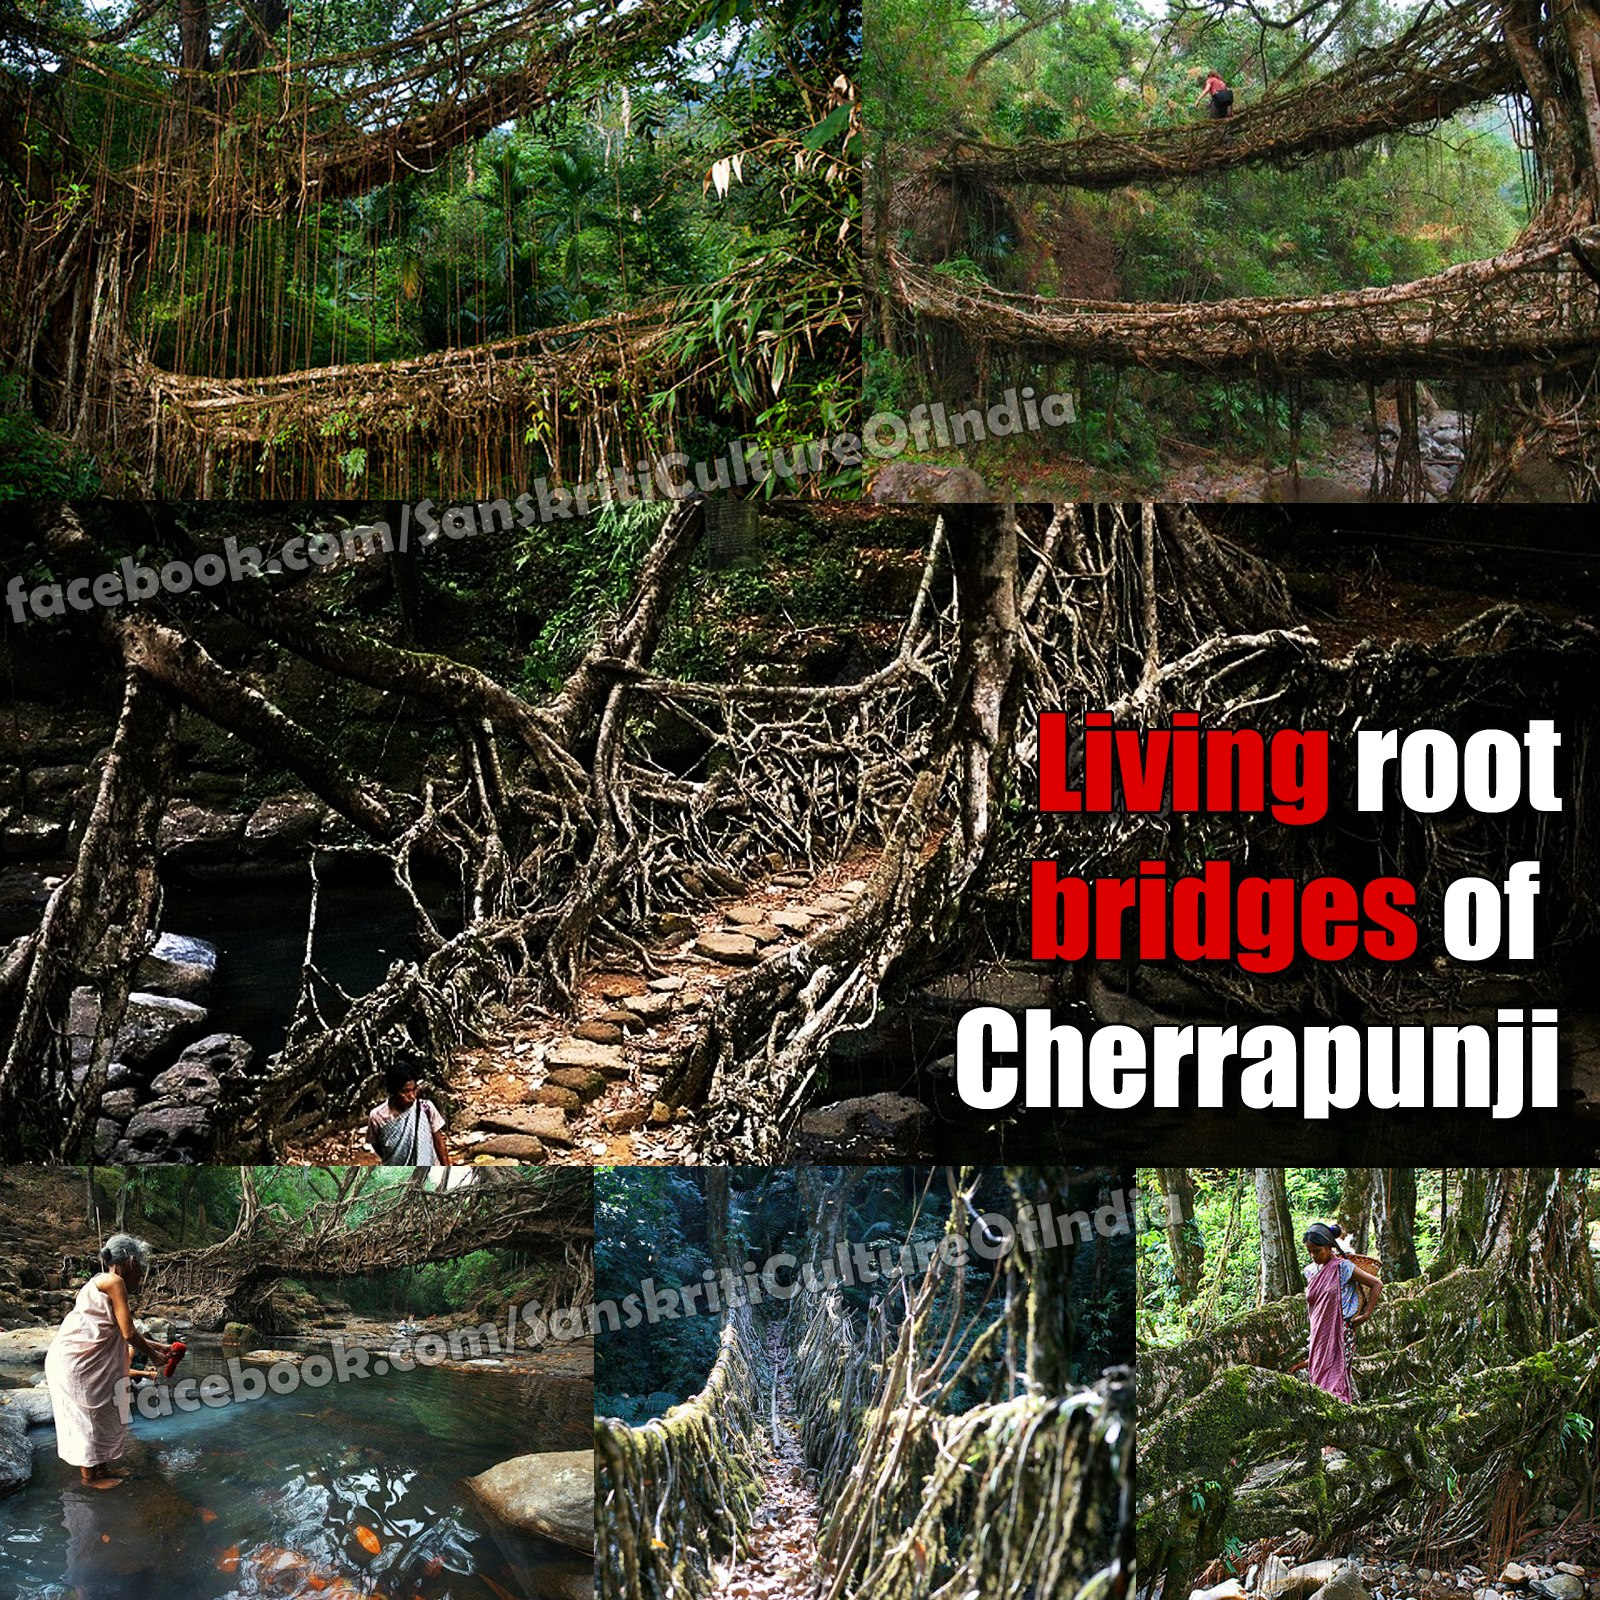 Living Root bridges of Cherrapunji